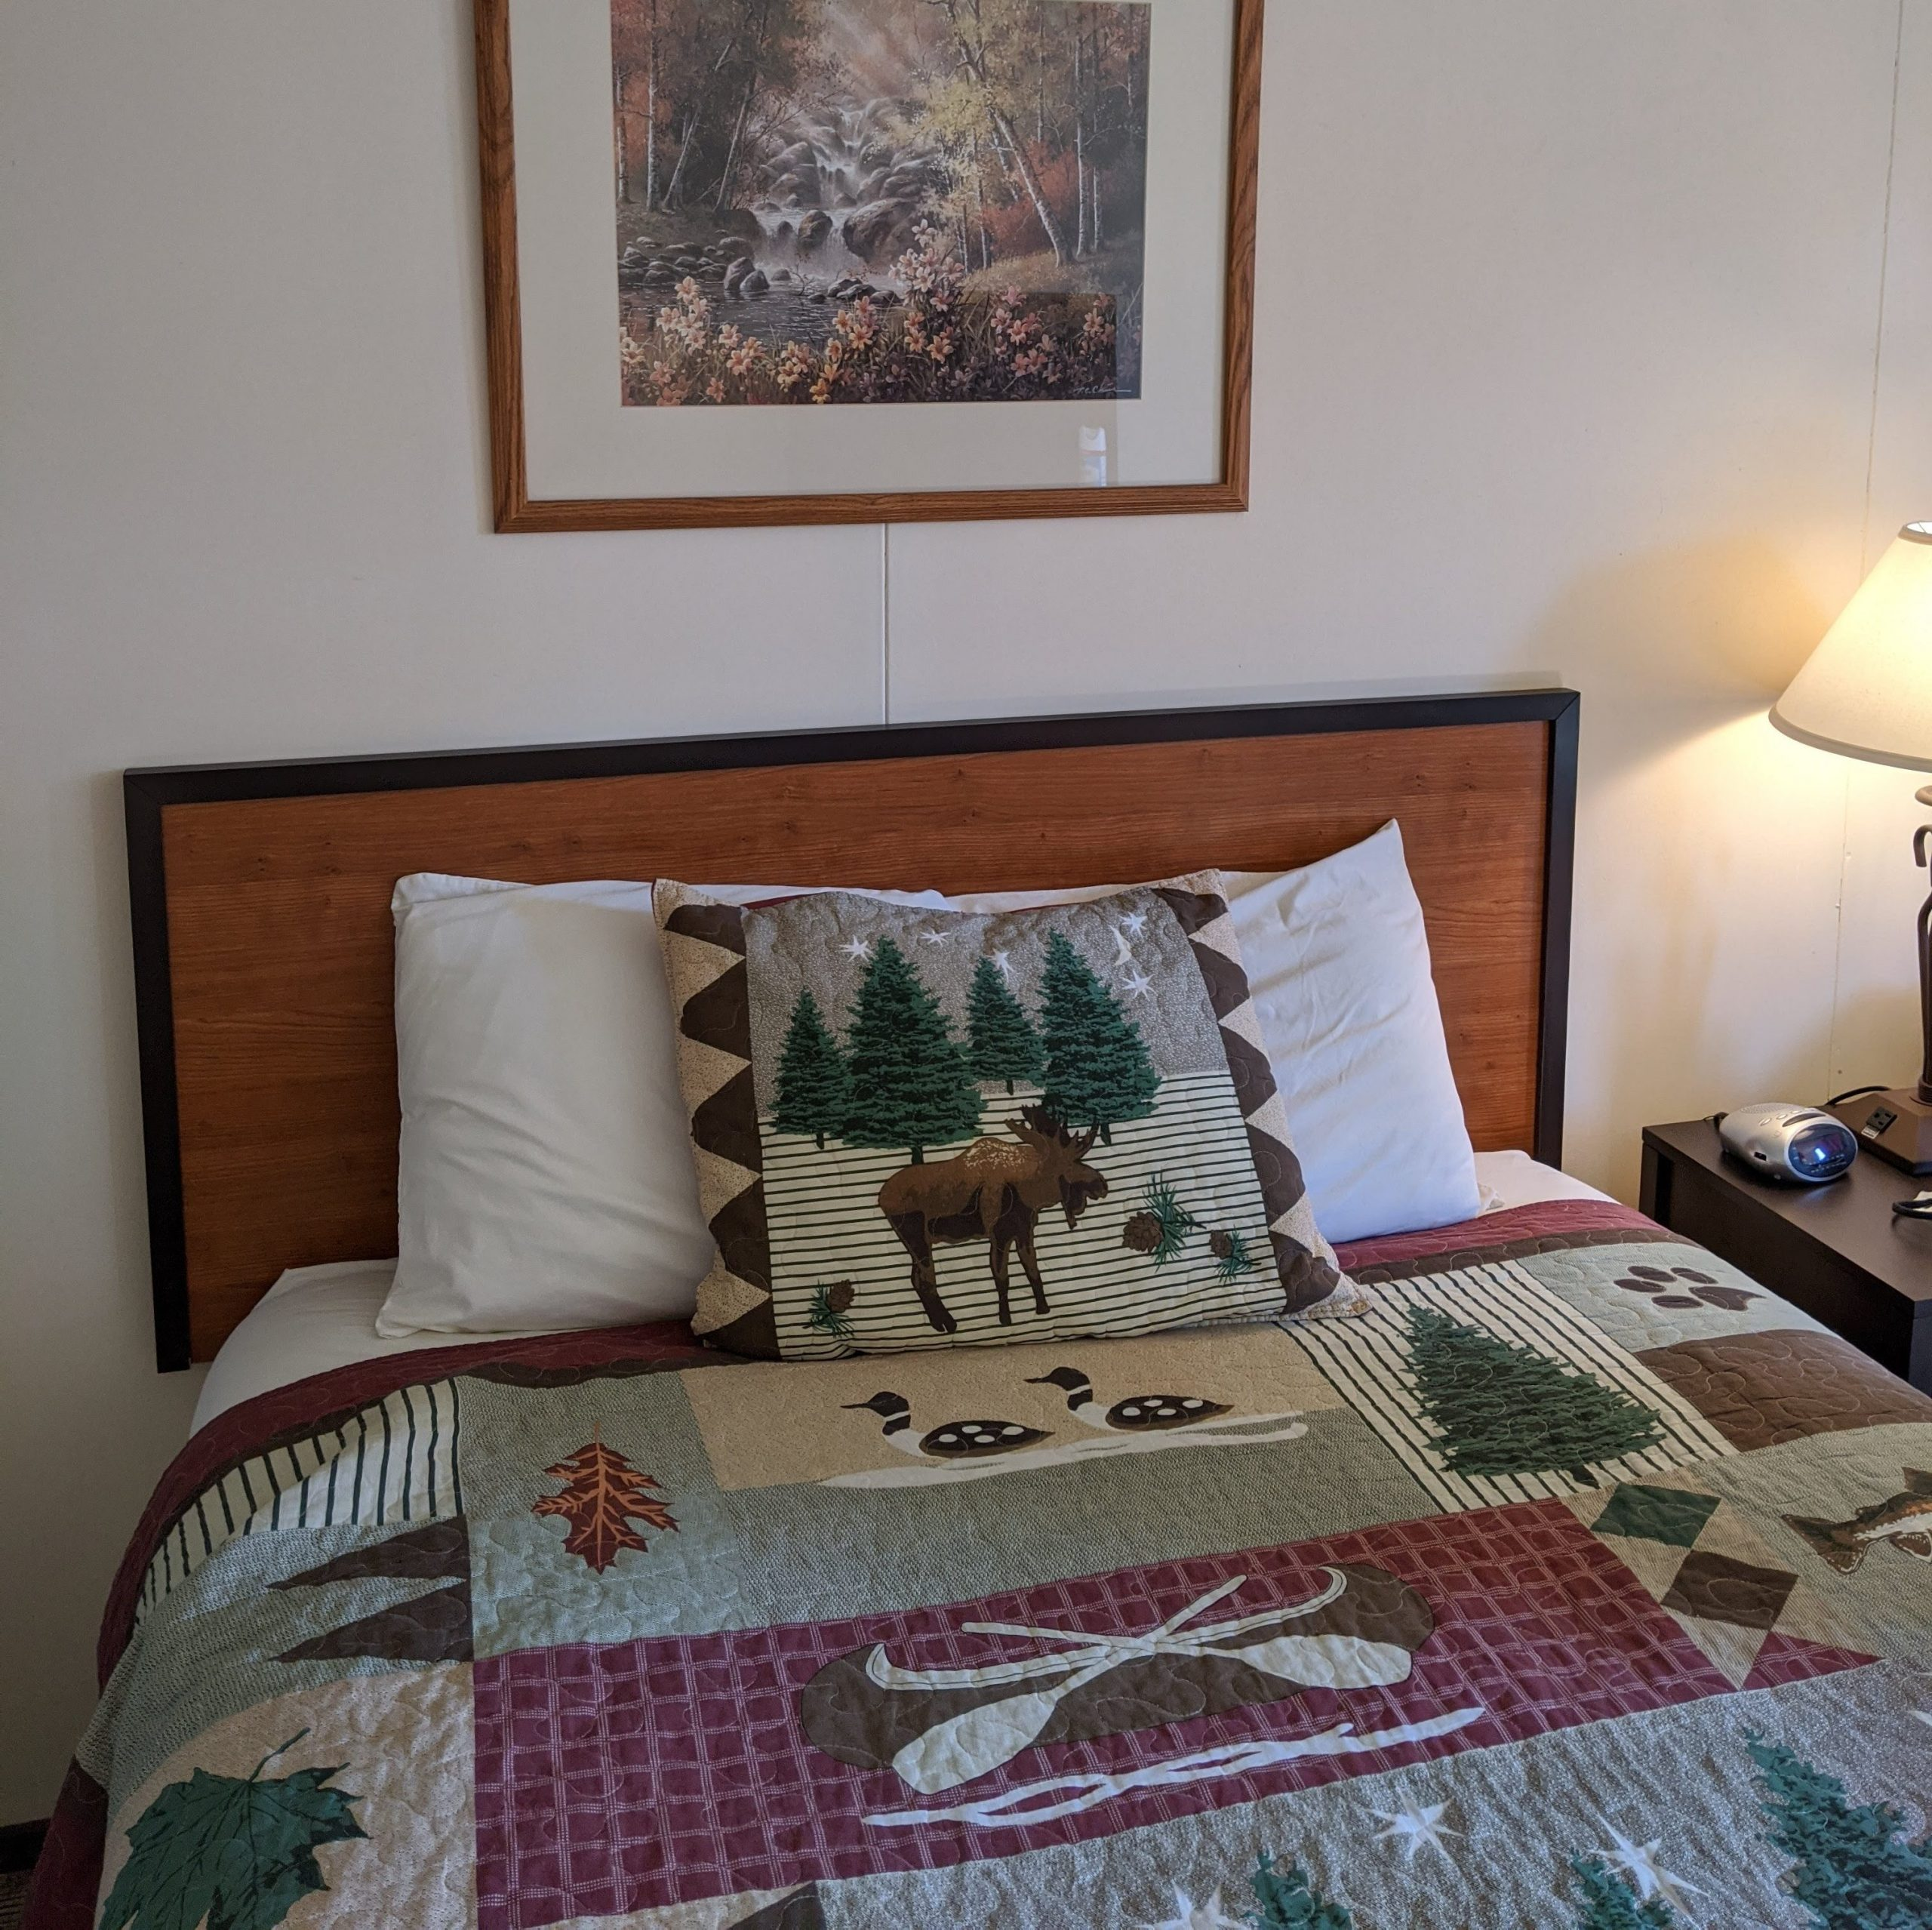 If you are looking for a hotel near Denali National Park then Denali Park Hotel in Healy, Alaska is a great choice.